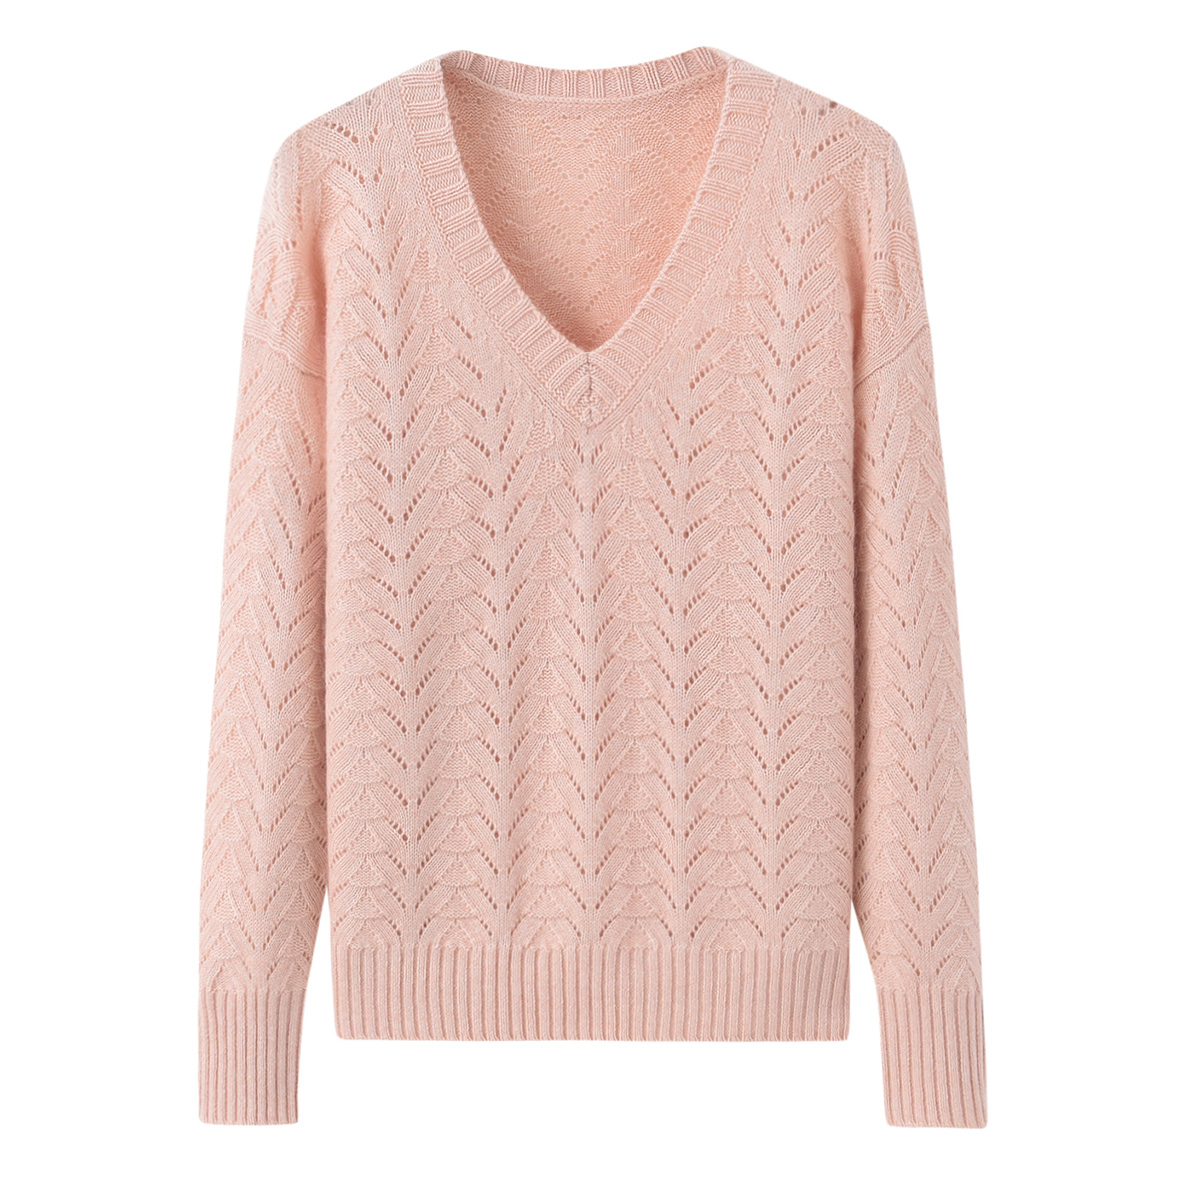 Autumn and winter new womens pure color cashmere sweater V-neck mesh hollow knitting thin casual backing sweater short sweater